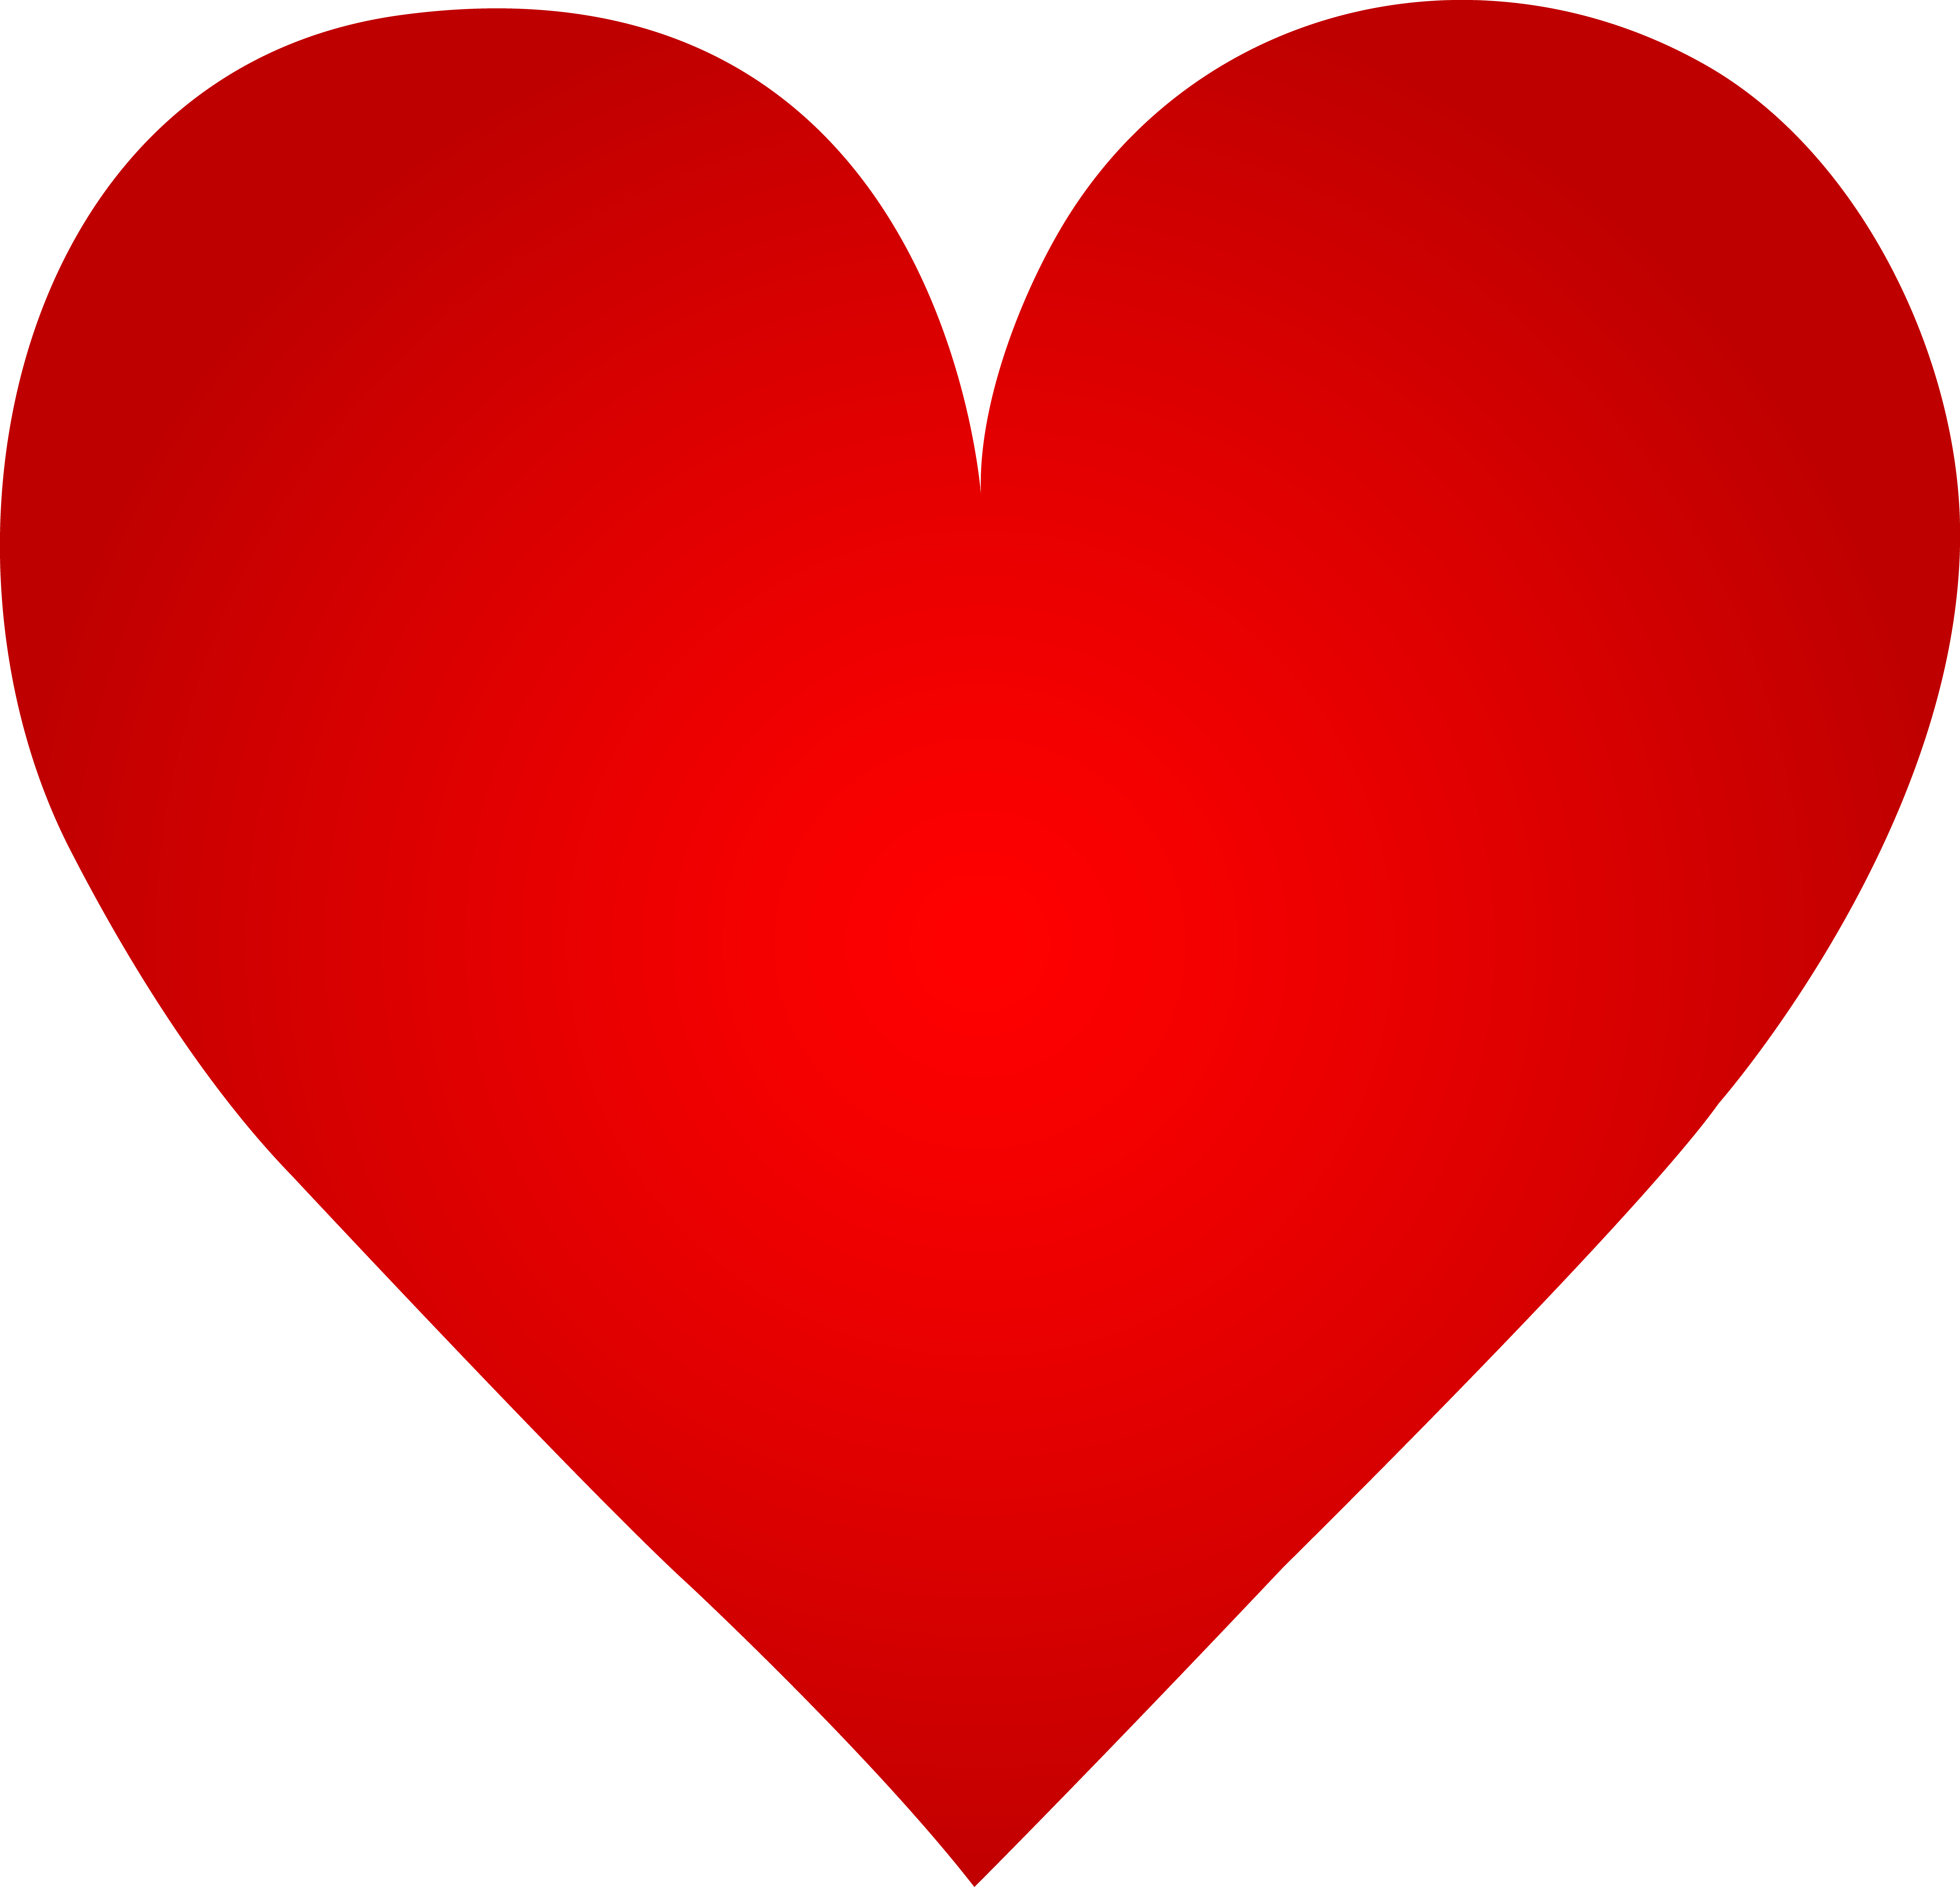 7989x7692 Big Red Heart